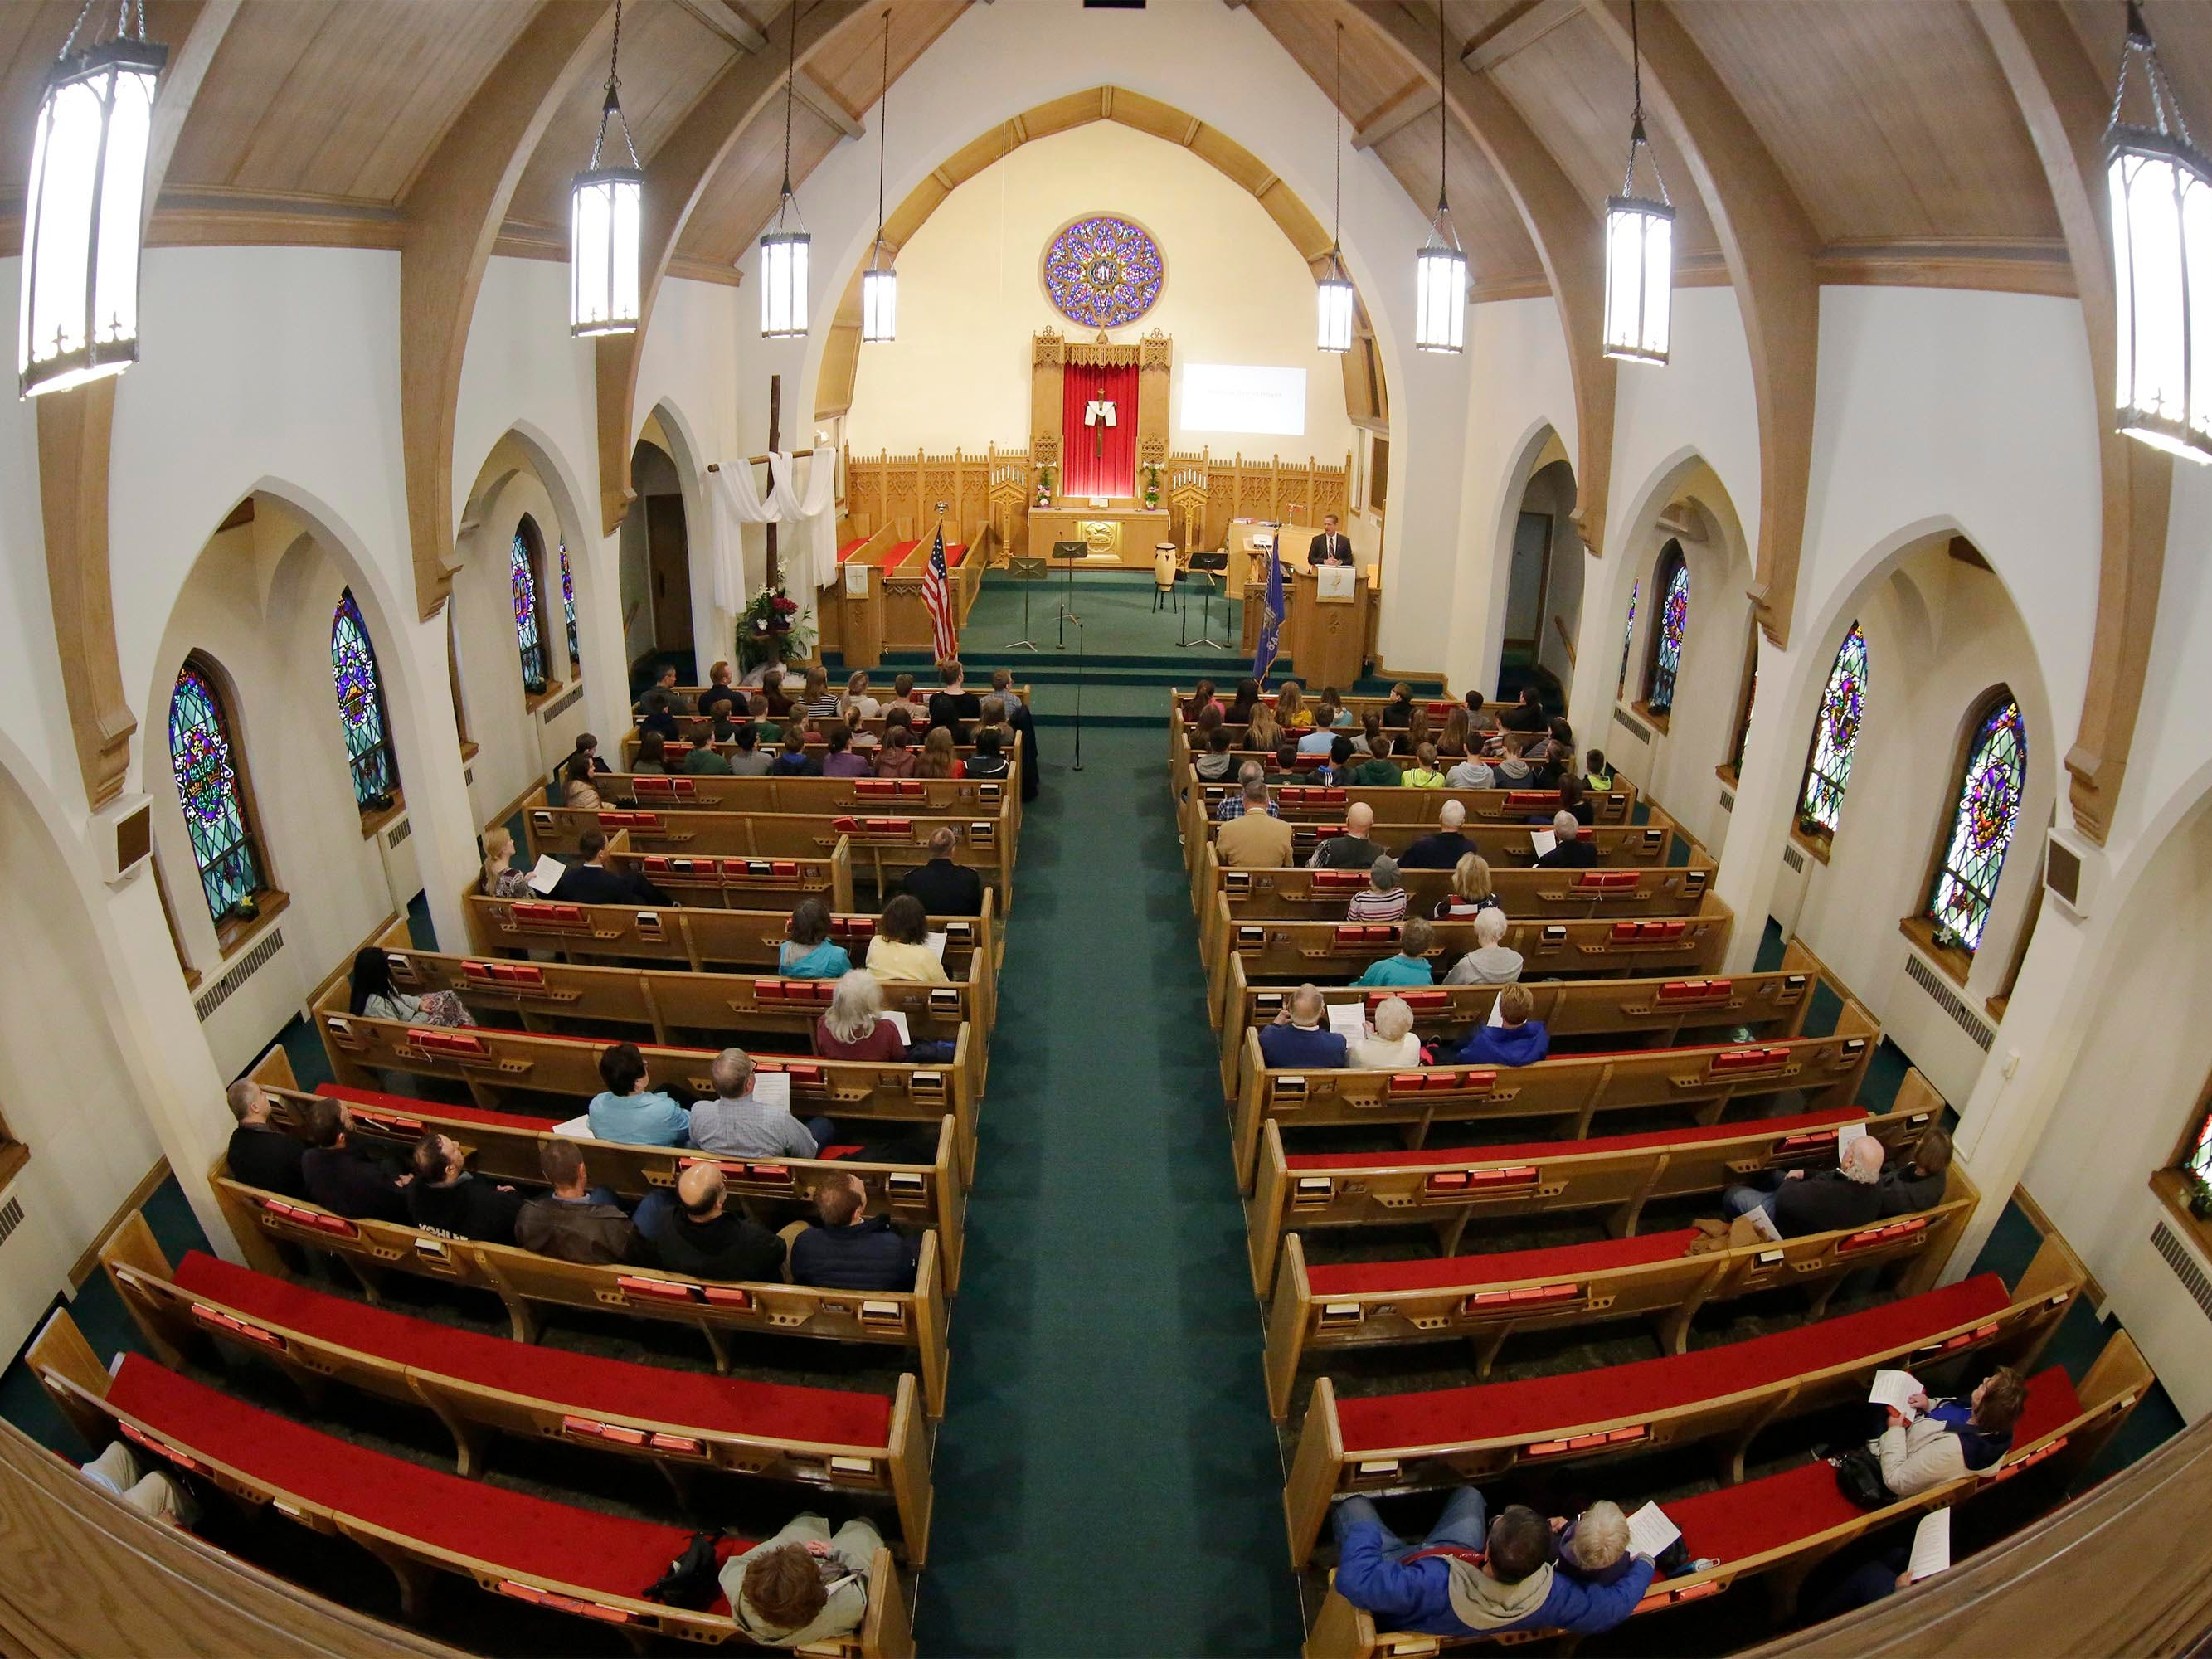 An overall during the National Day of Prayer service, Thursday, May 2, 2019, at Fountain Park Church, in Sheboygan, Wis. A fisheye lens was used for the image.